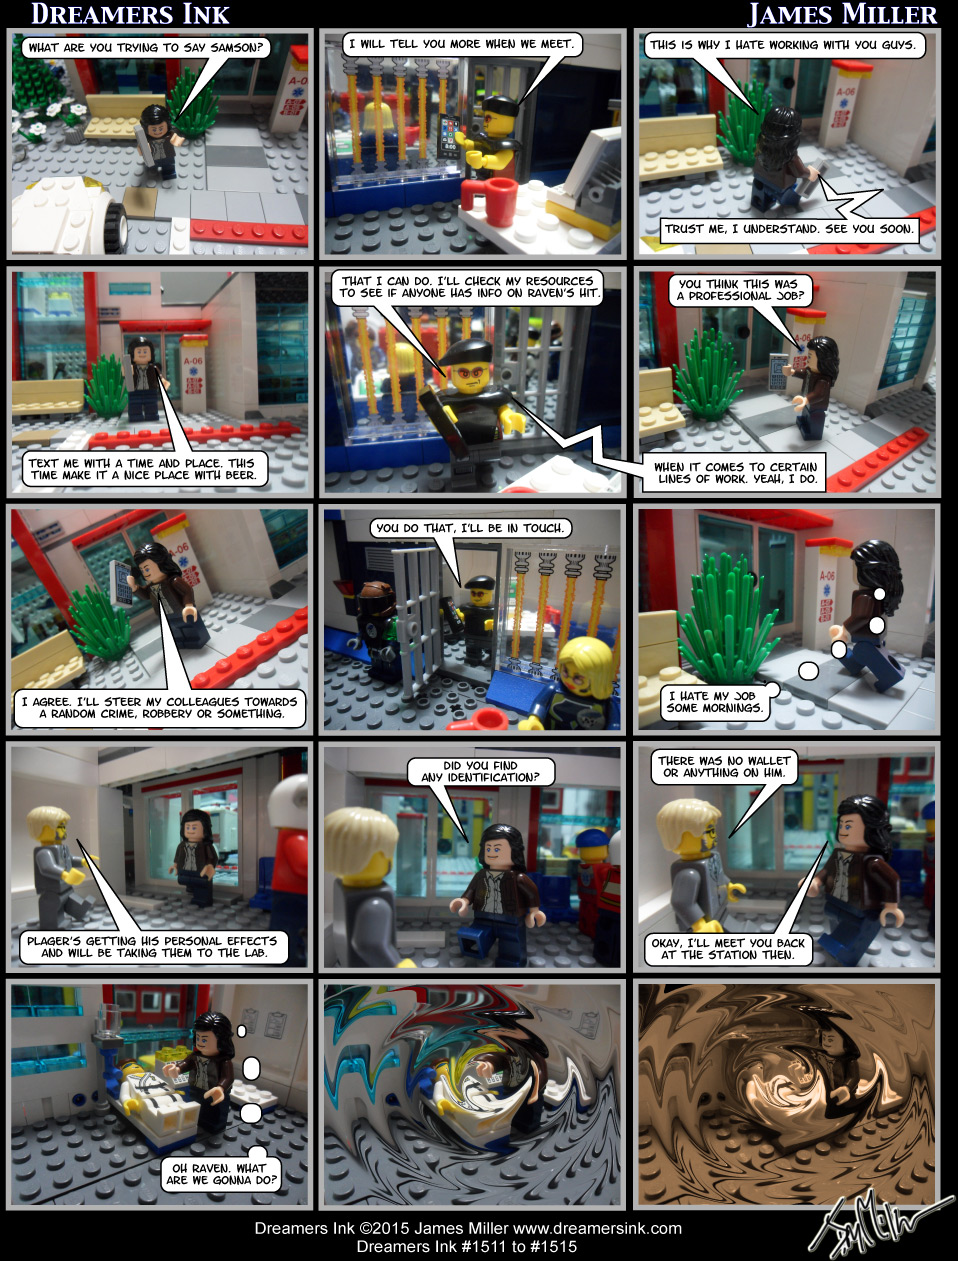 Strips #1511 To #1515